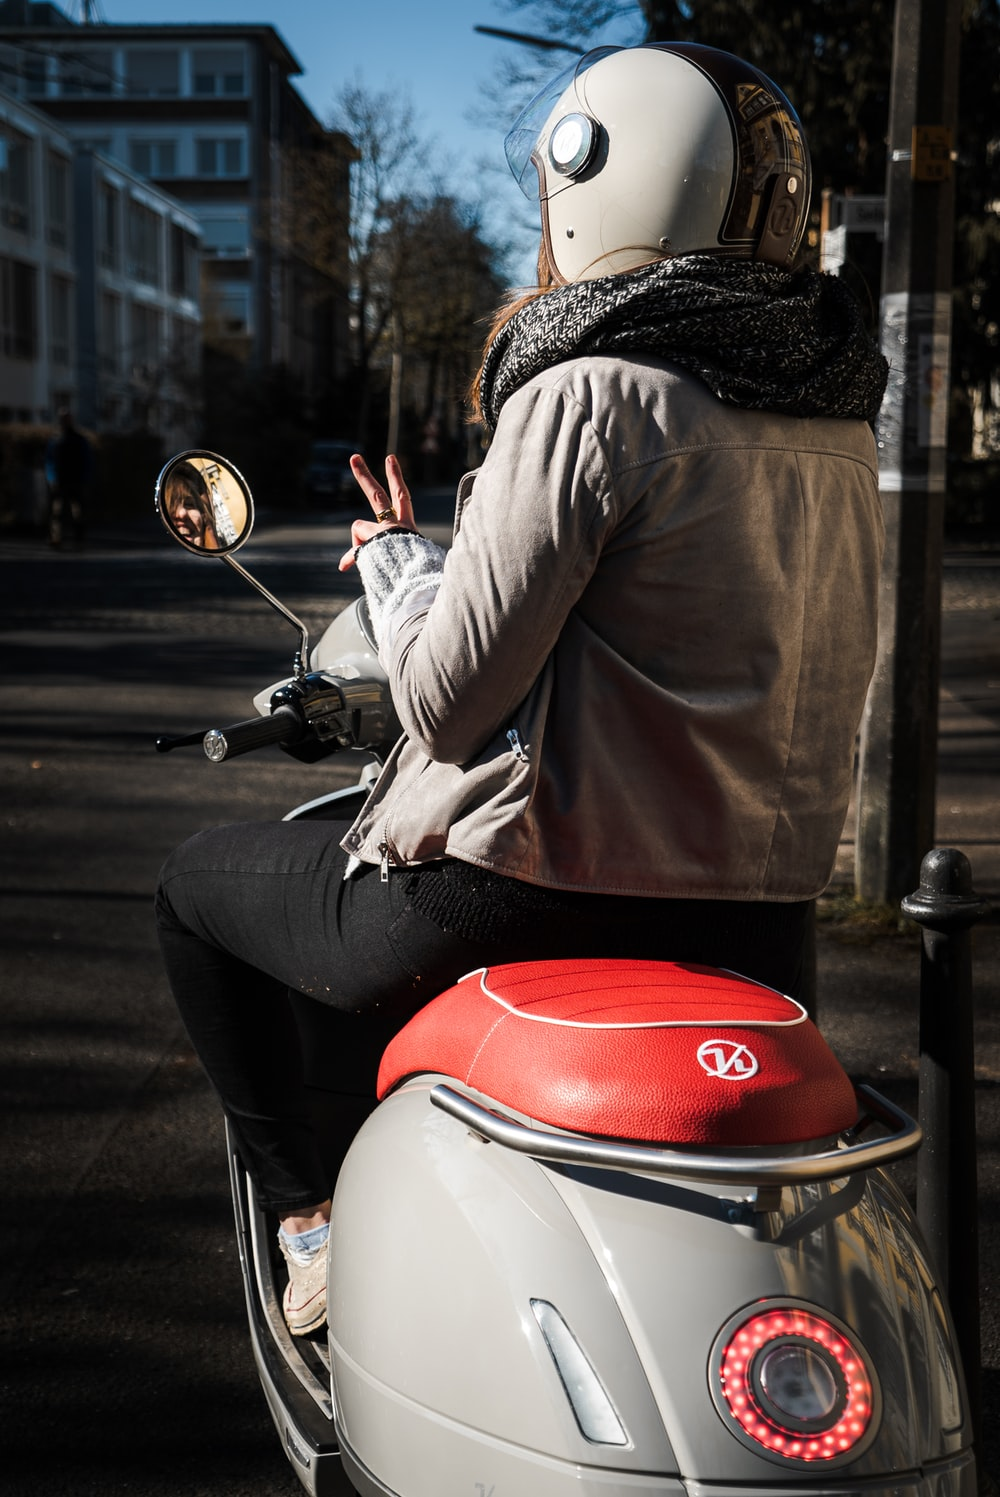 person in brown long sleeve shirt riding on red and white motor scooter during daytime